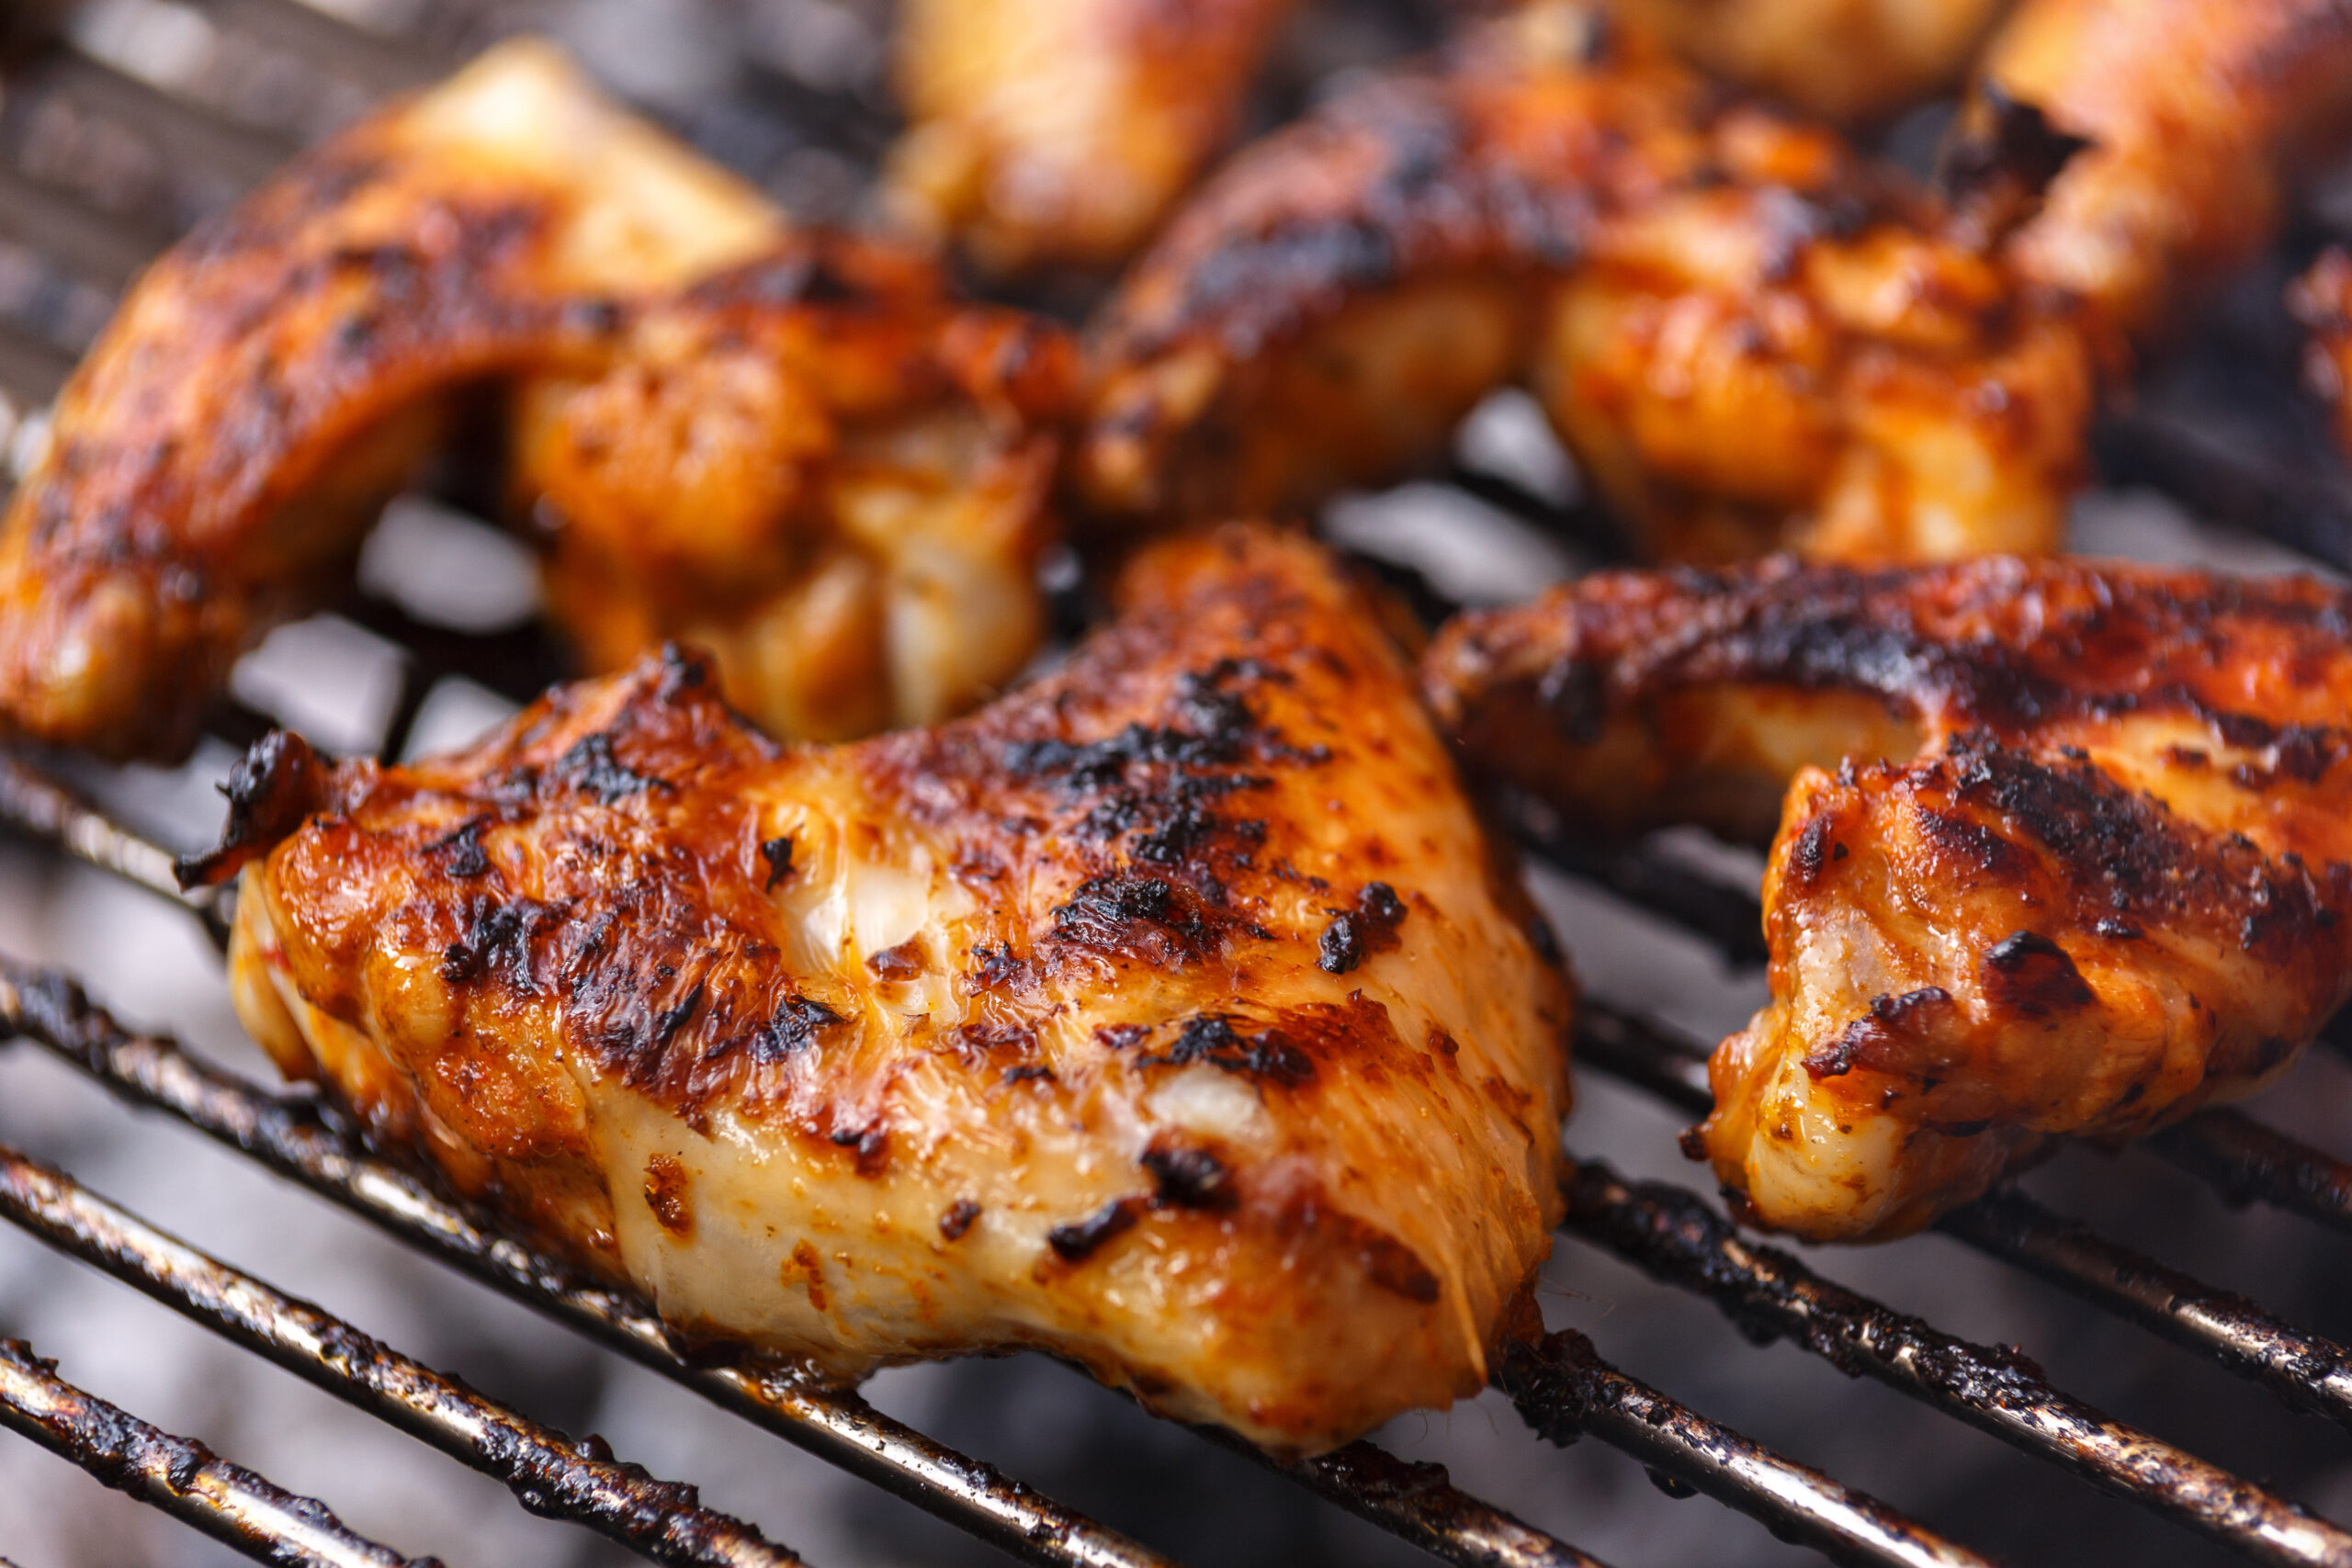 Chicken wings on barbecue, BBQ grill with fire